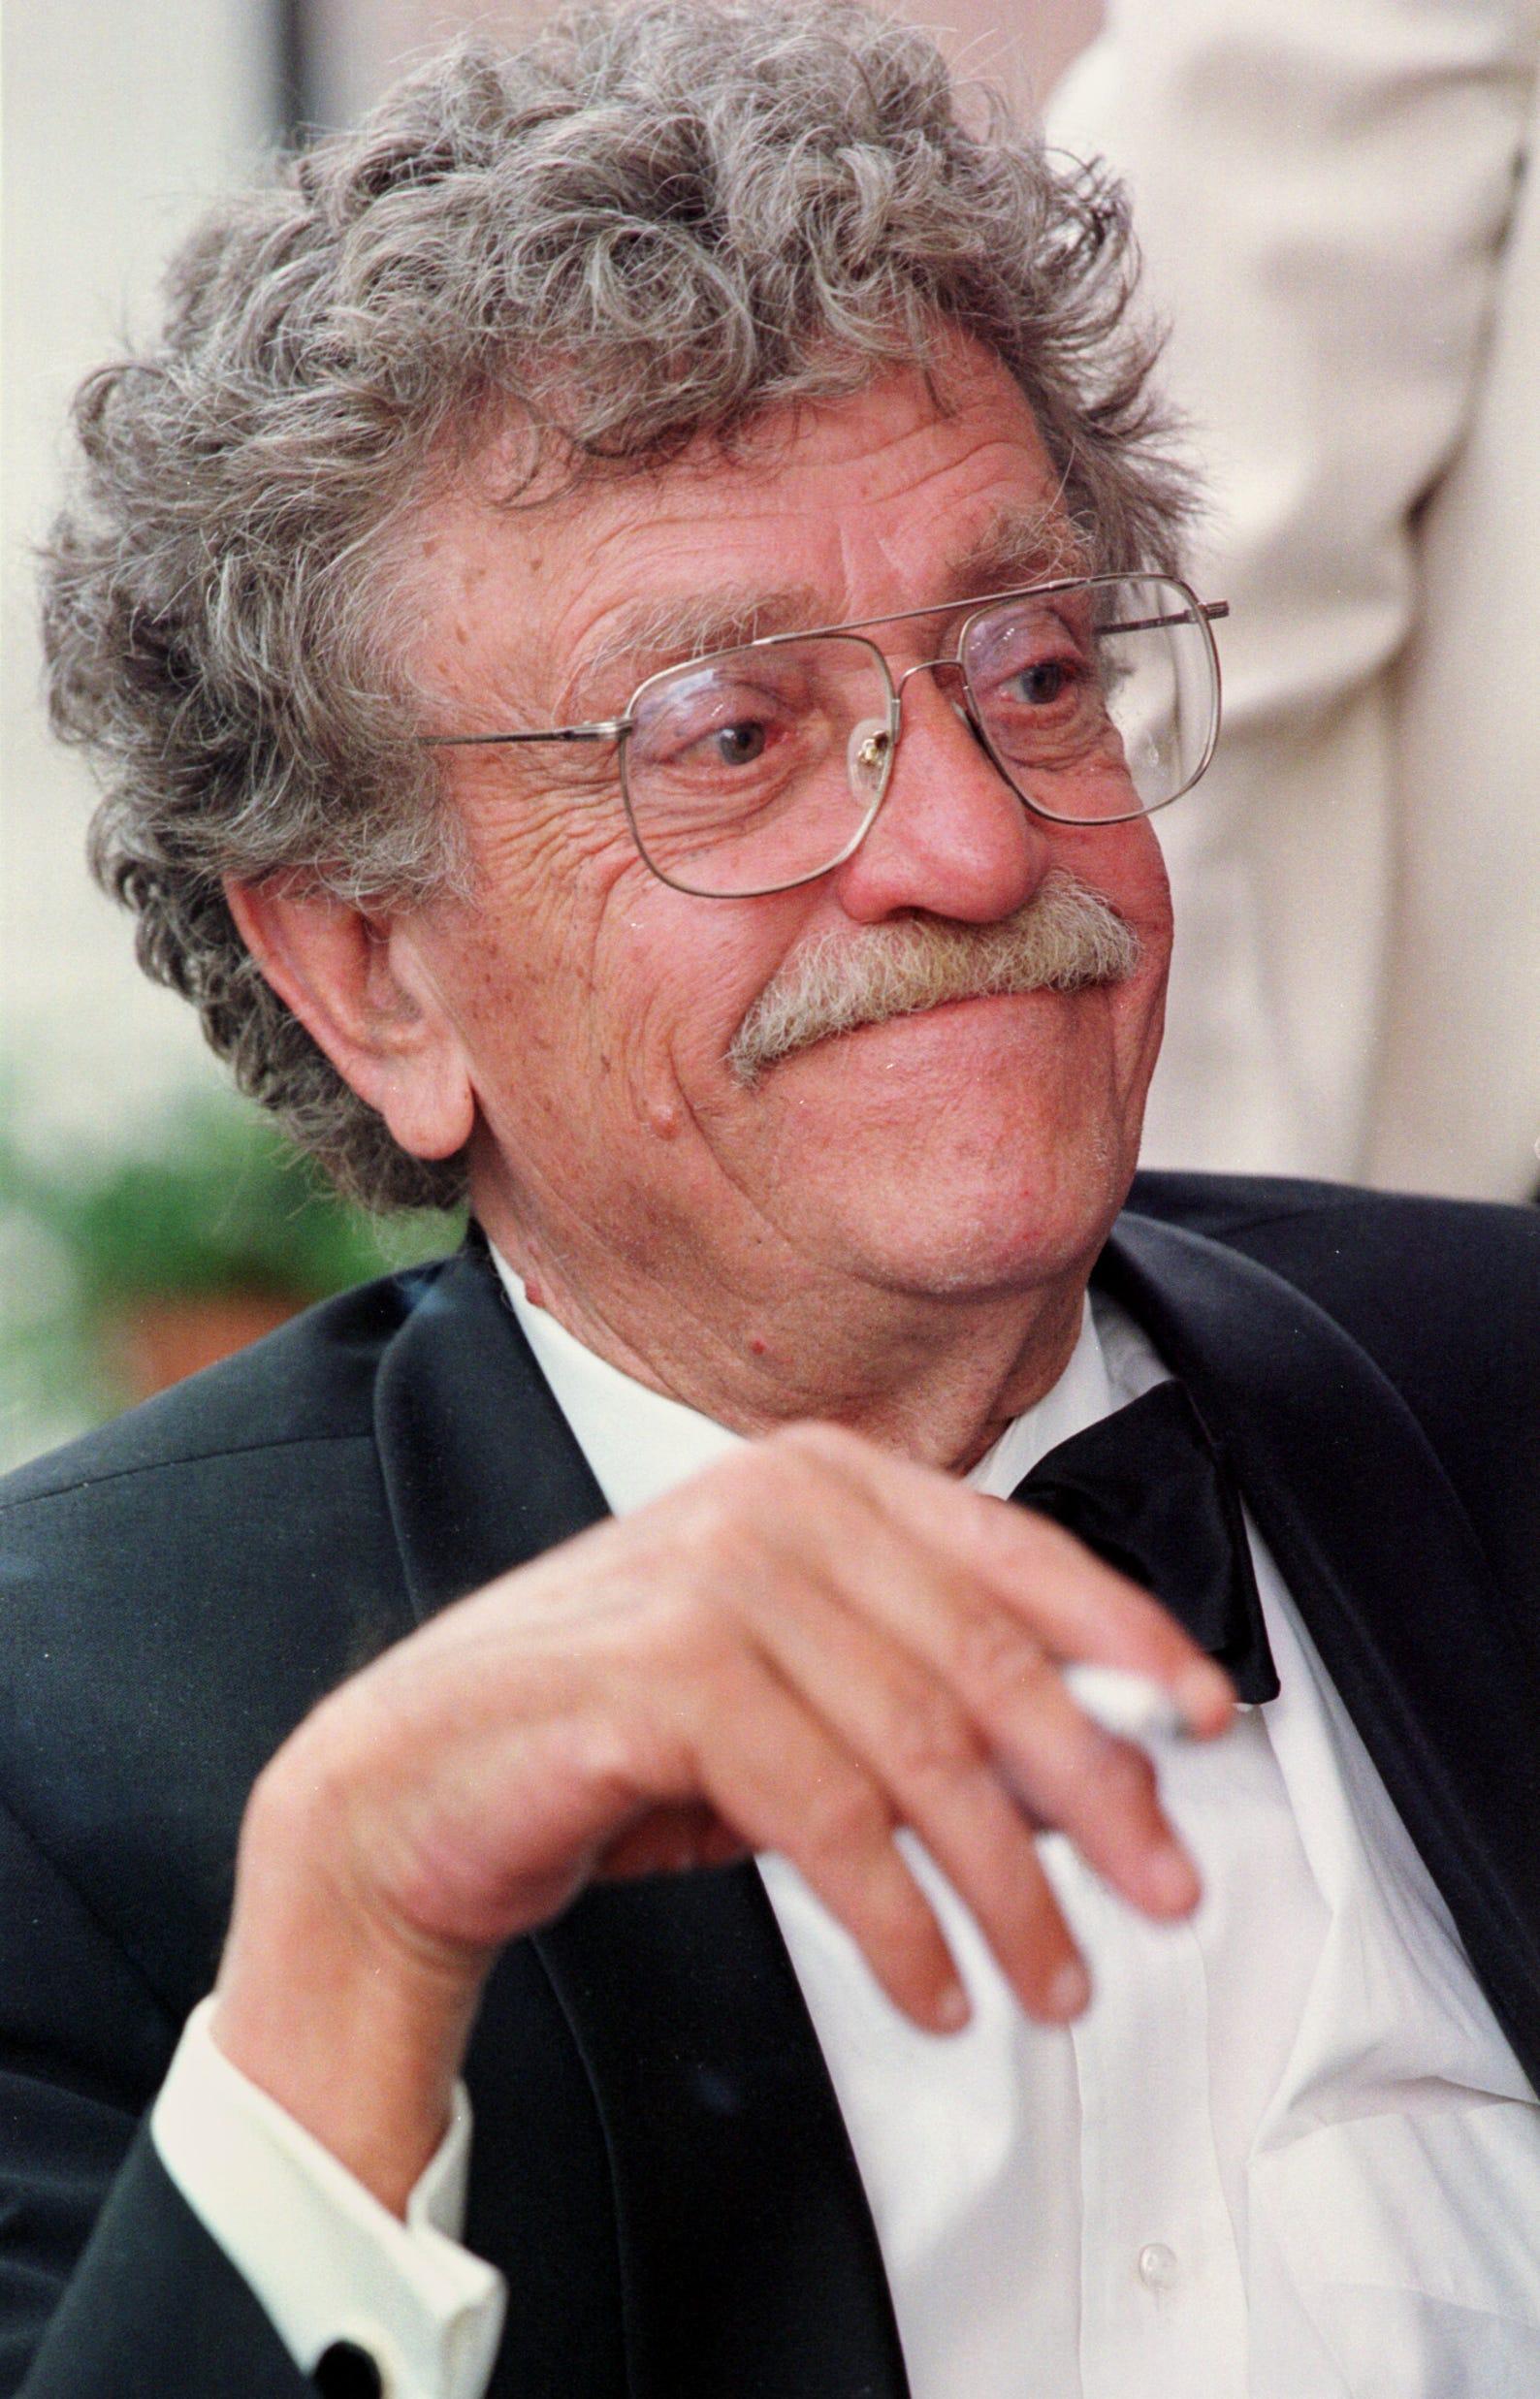 Retro Indy: Kurt Vonnegut in photos